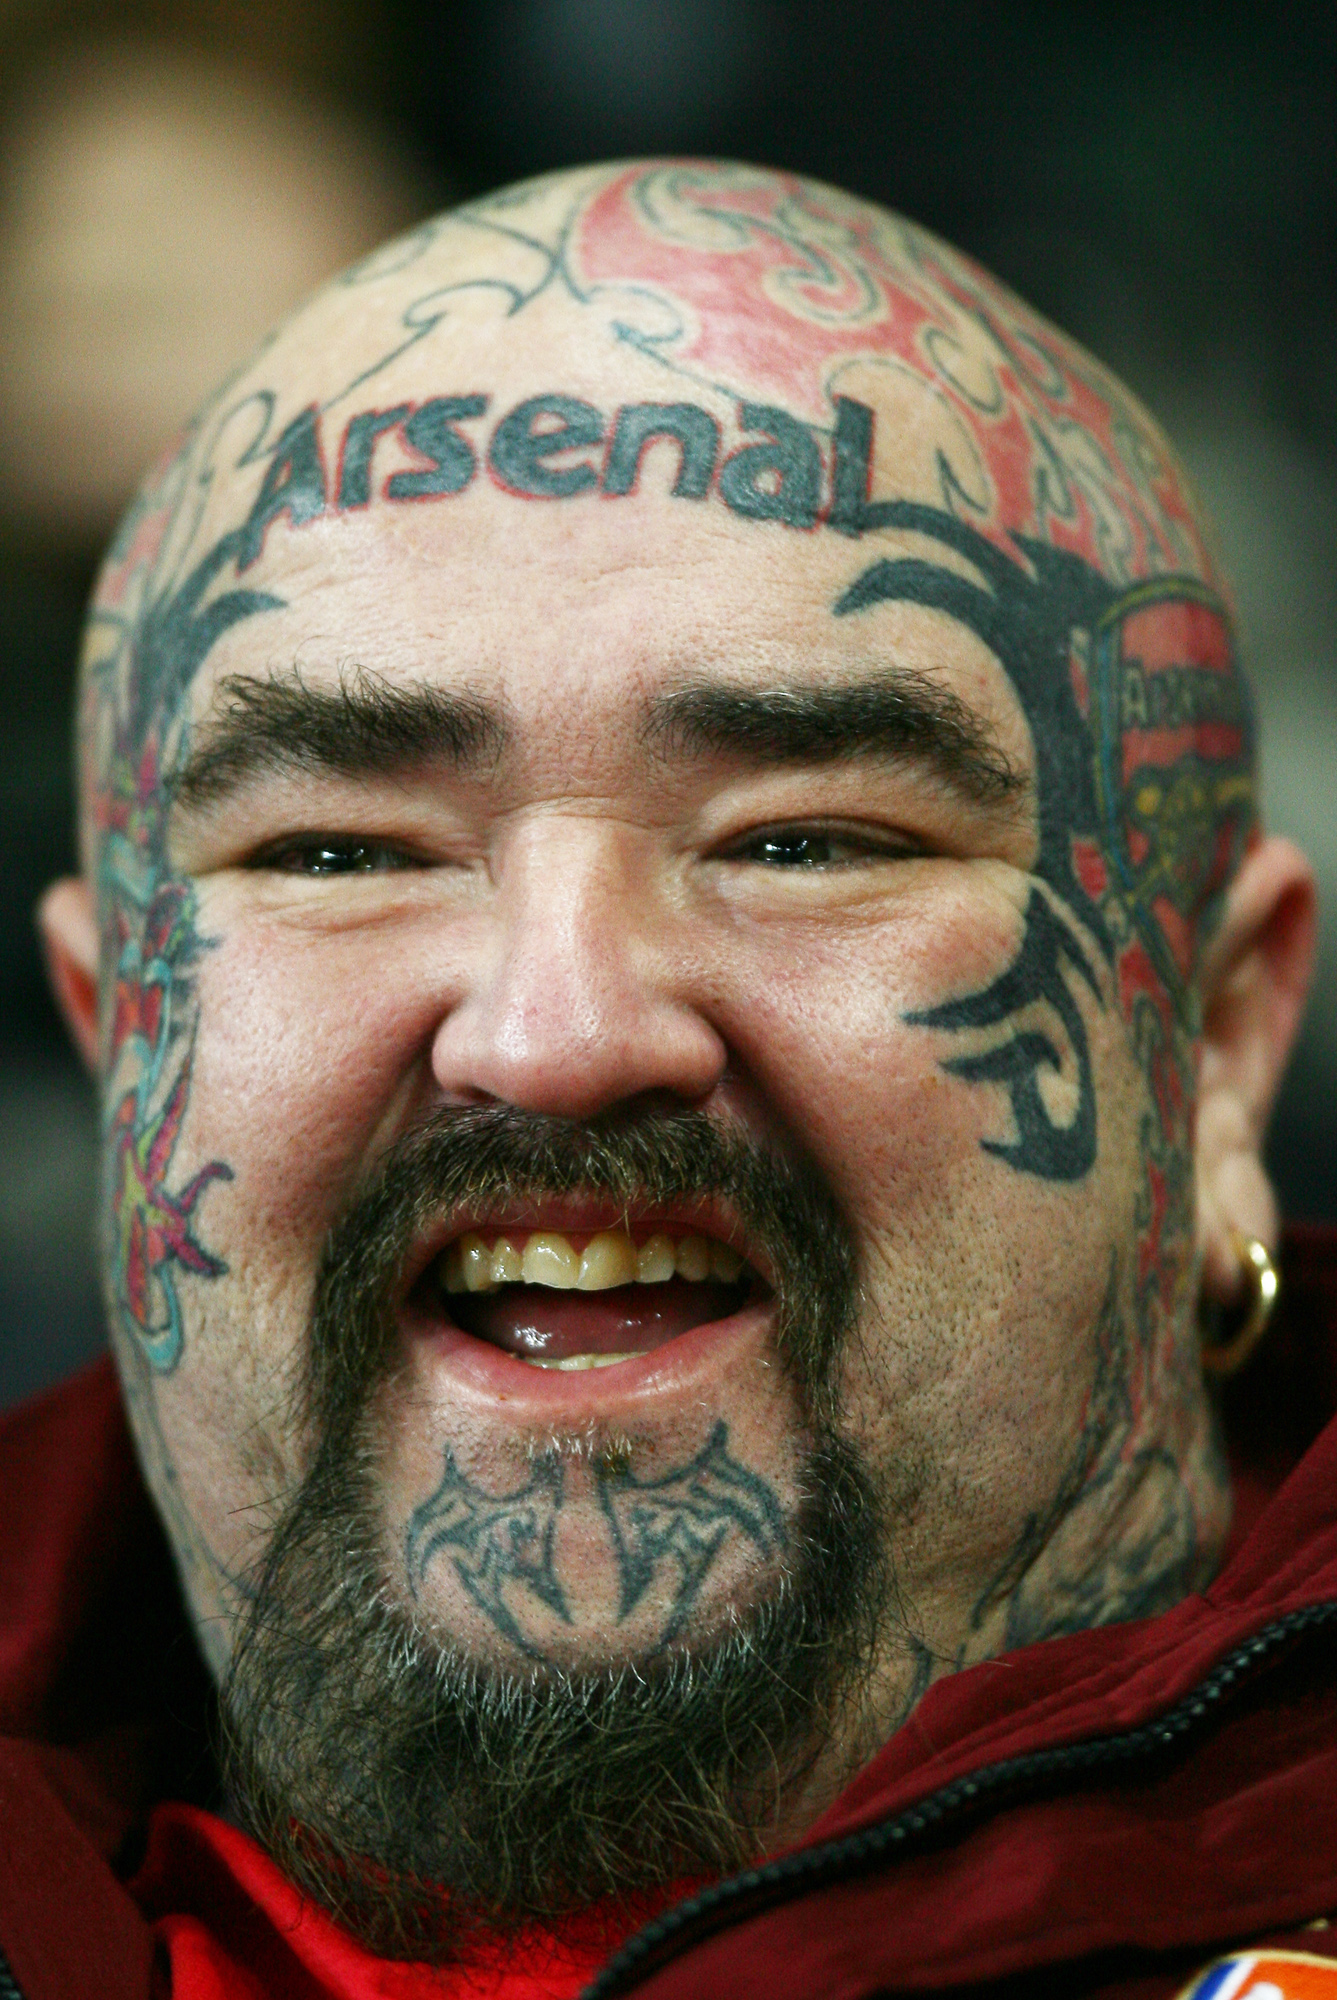 Supporter d'Arsenal (Londres, ANGLETERRE, 2006) Copyright ALAIN GADOFFRE